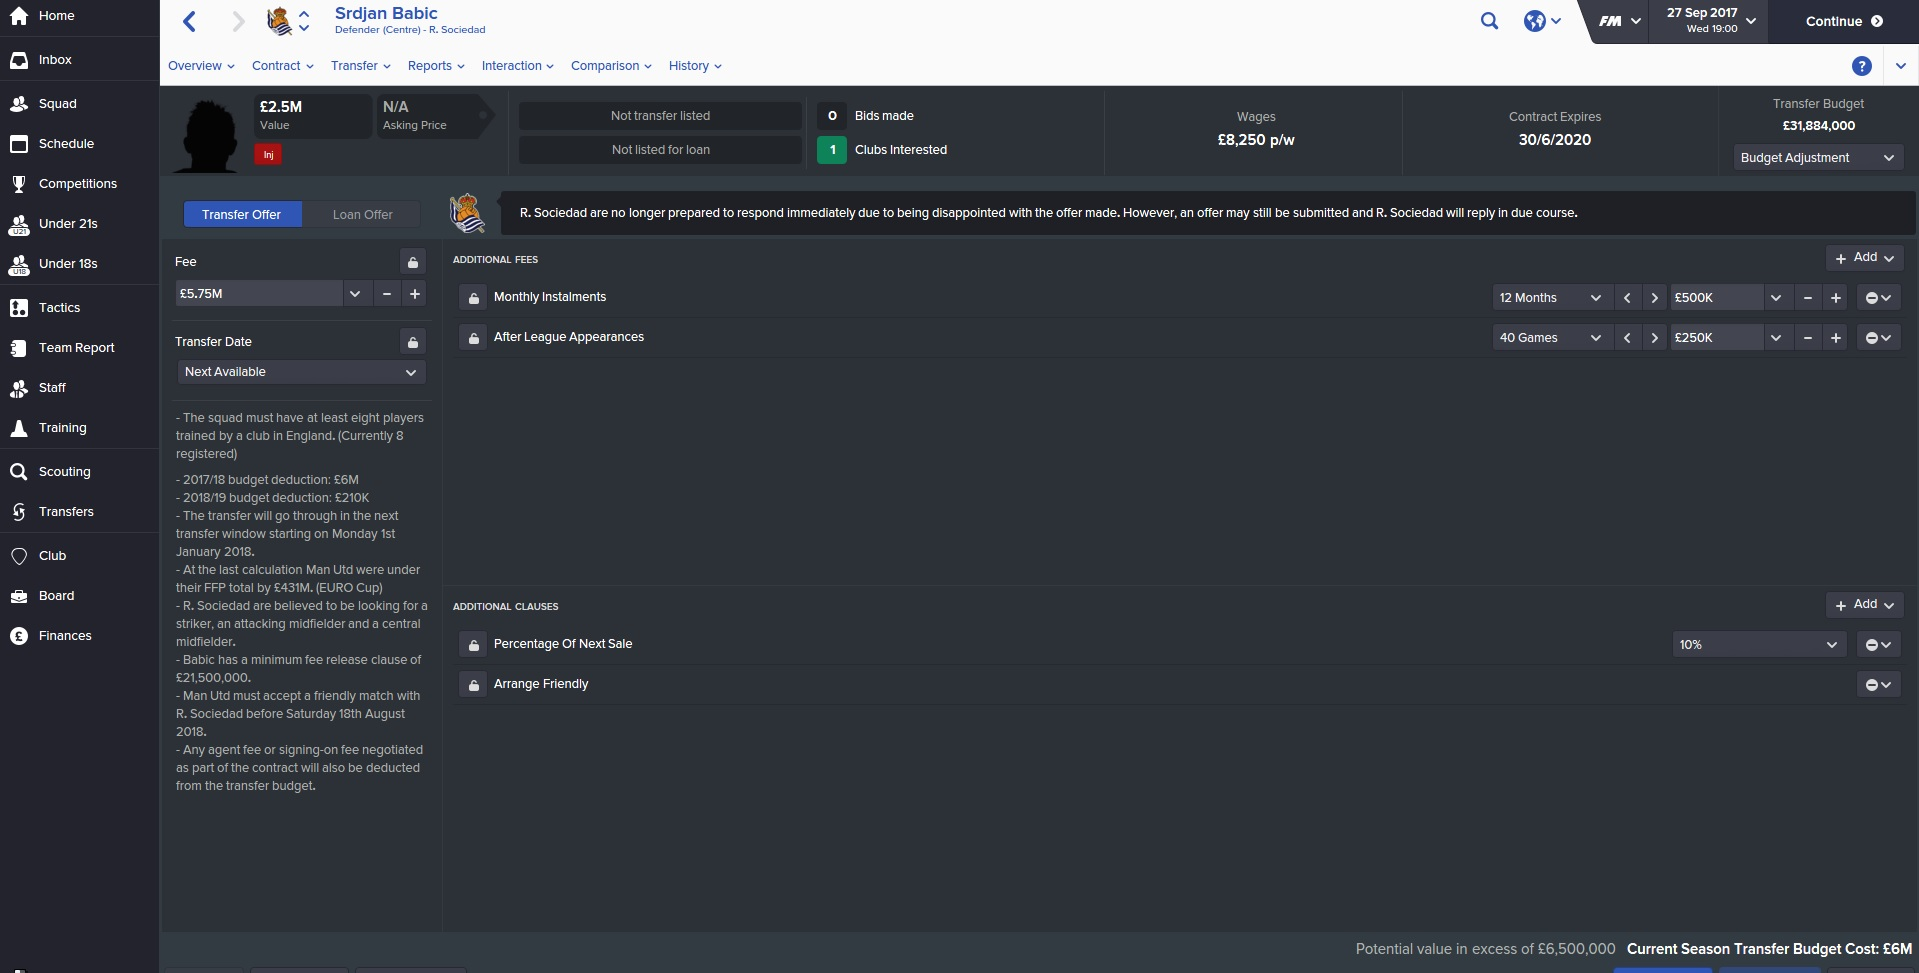 football manager review nerd lowdown football manager 2016 has also seen a good overhaul of the transfer system much like real life the transfer market is still a cruel and unforgiving place